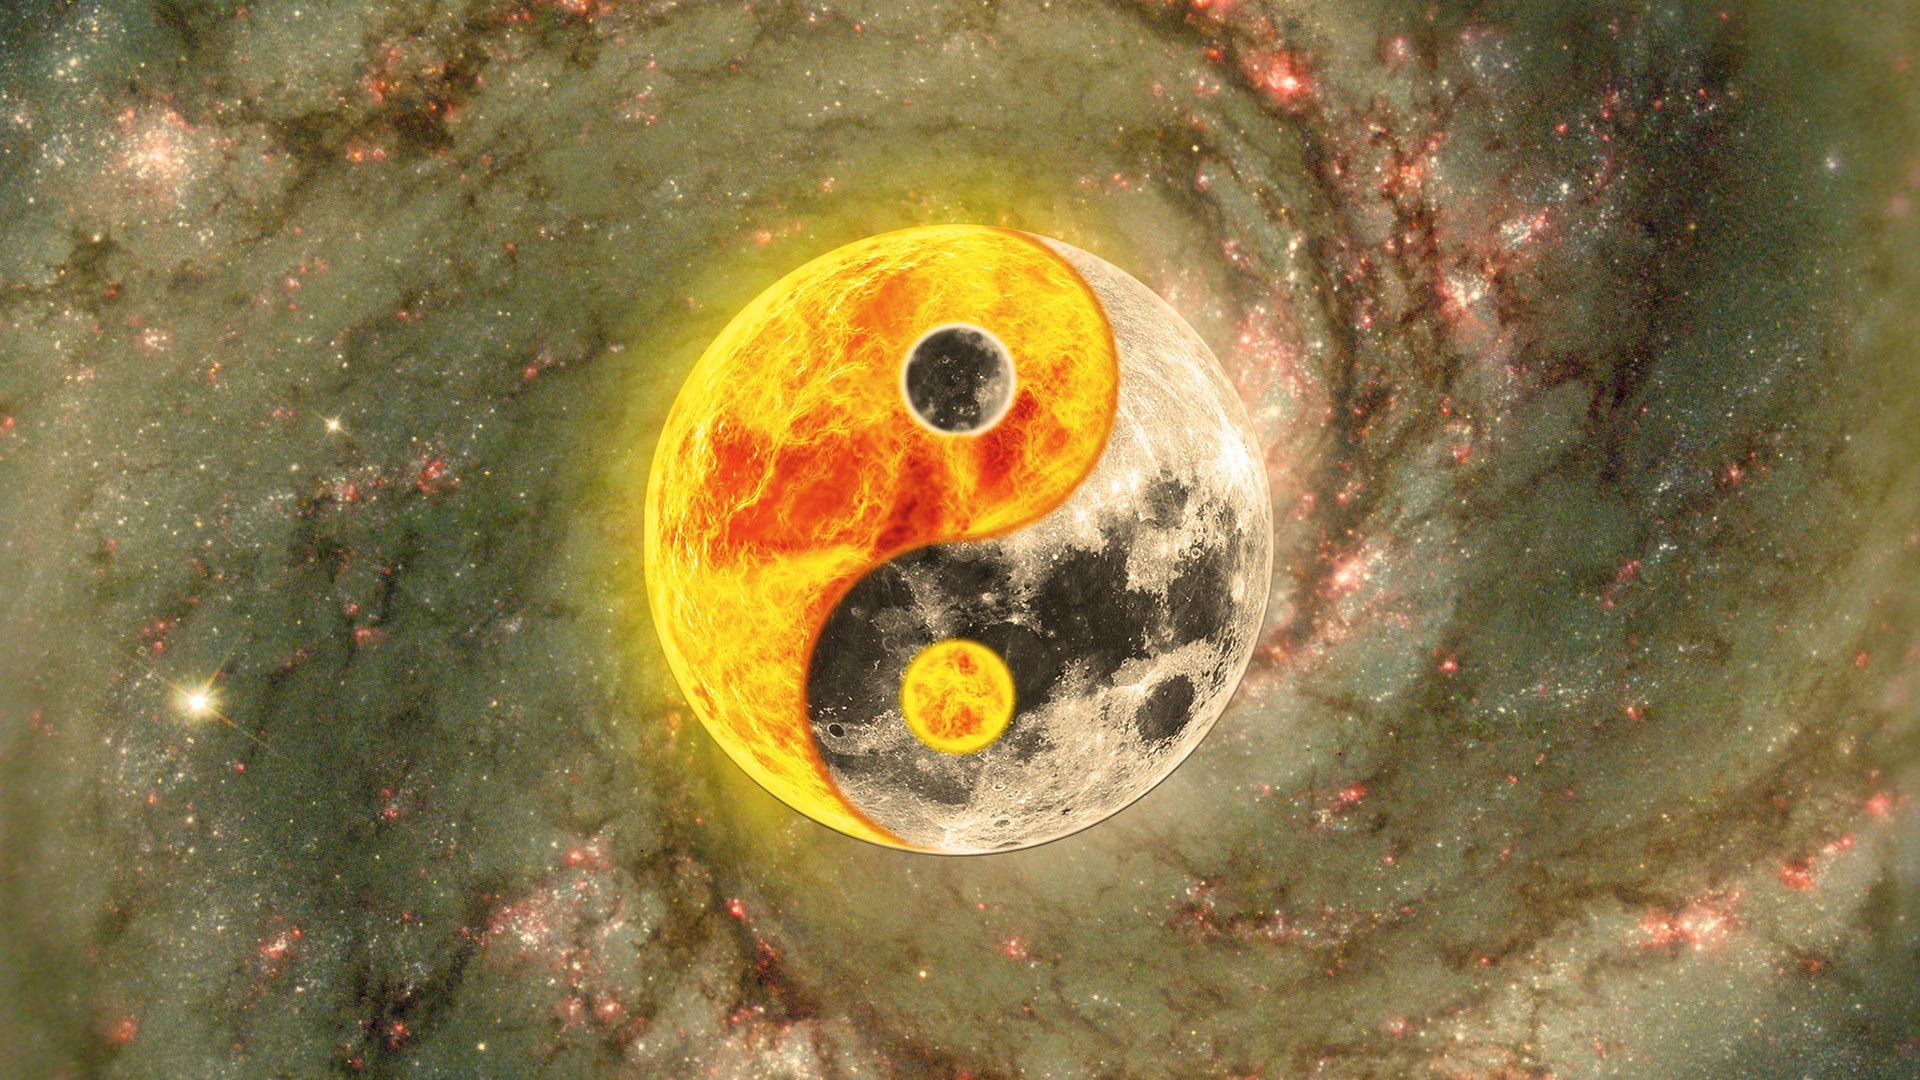 Yin Yang - Tao Galaxy - Dao - Wallpaper